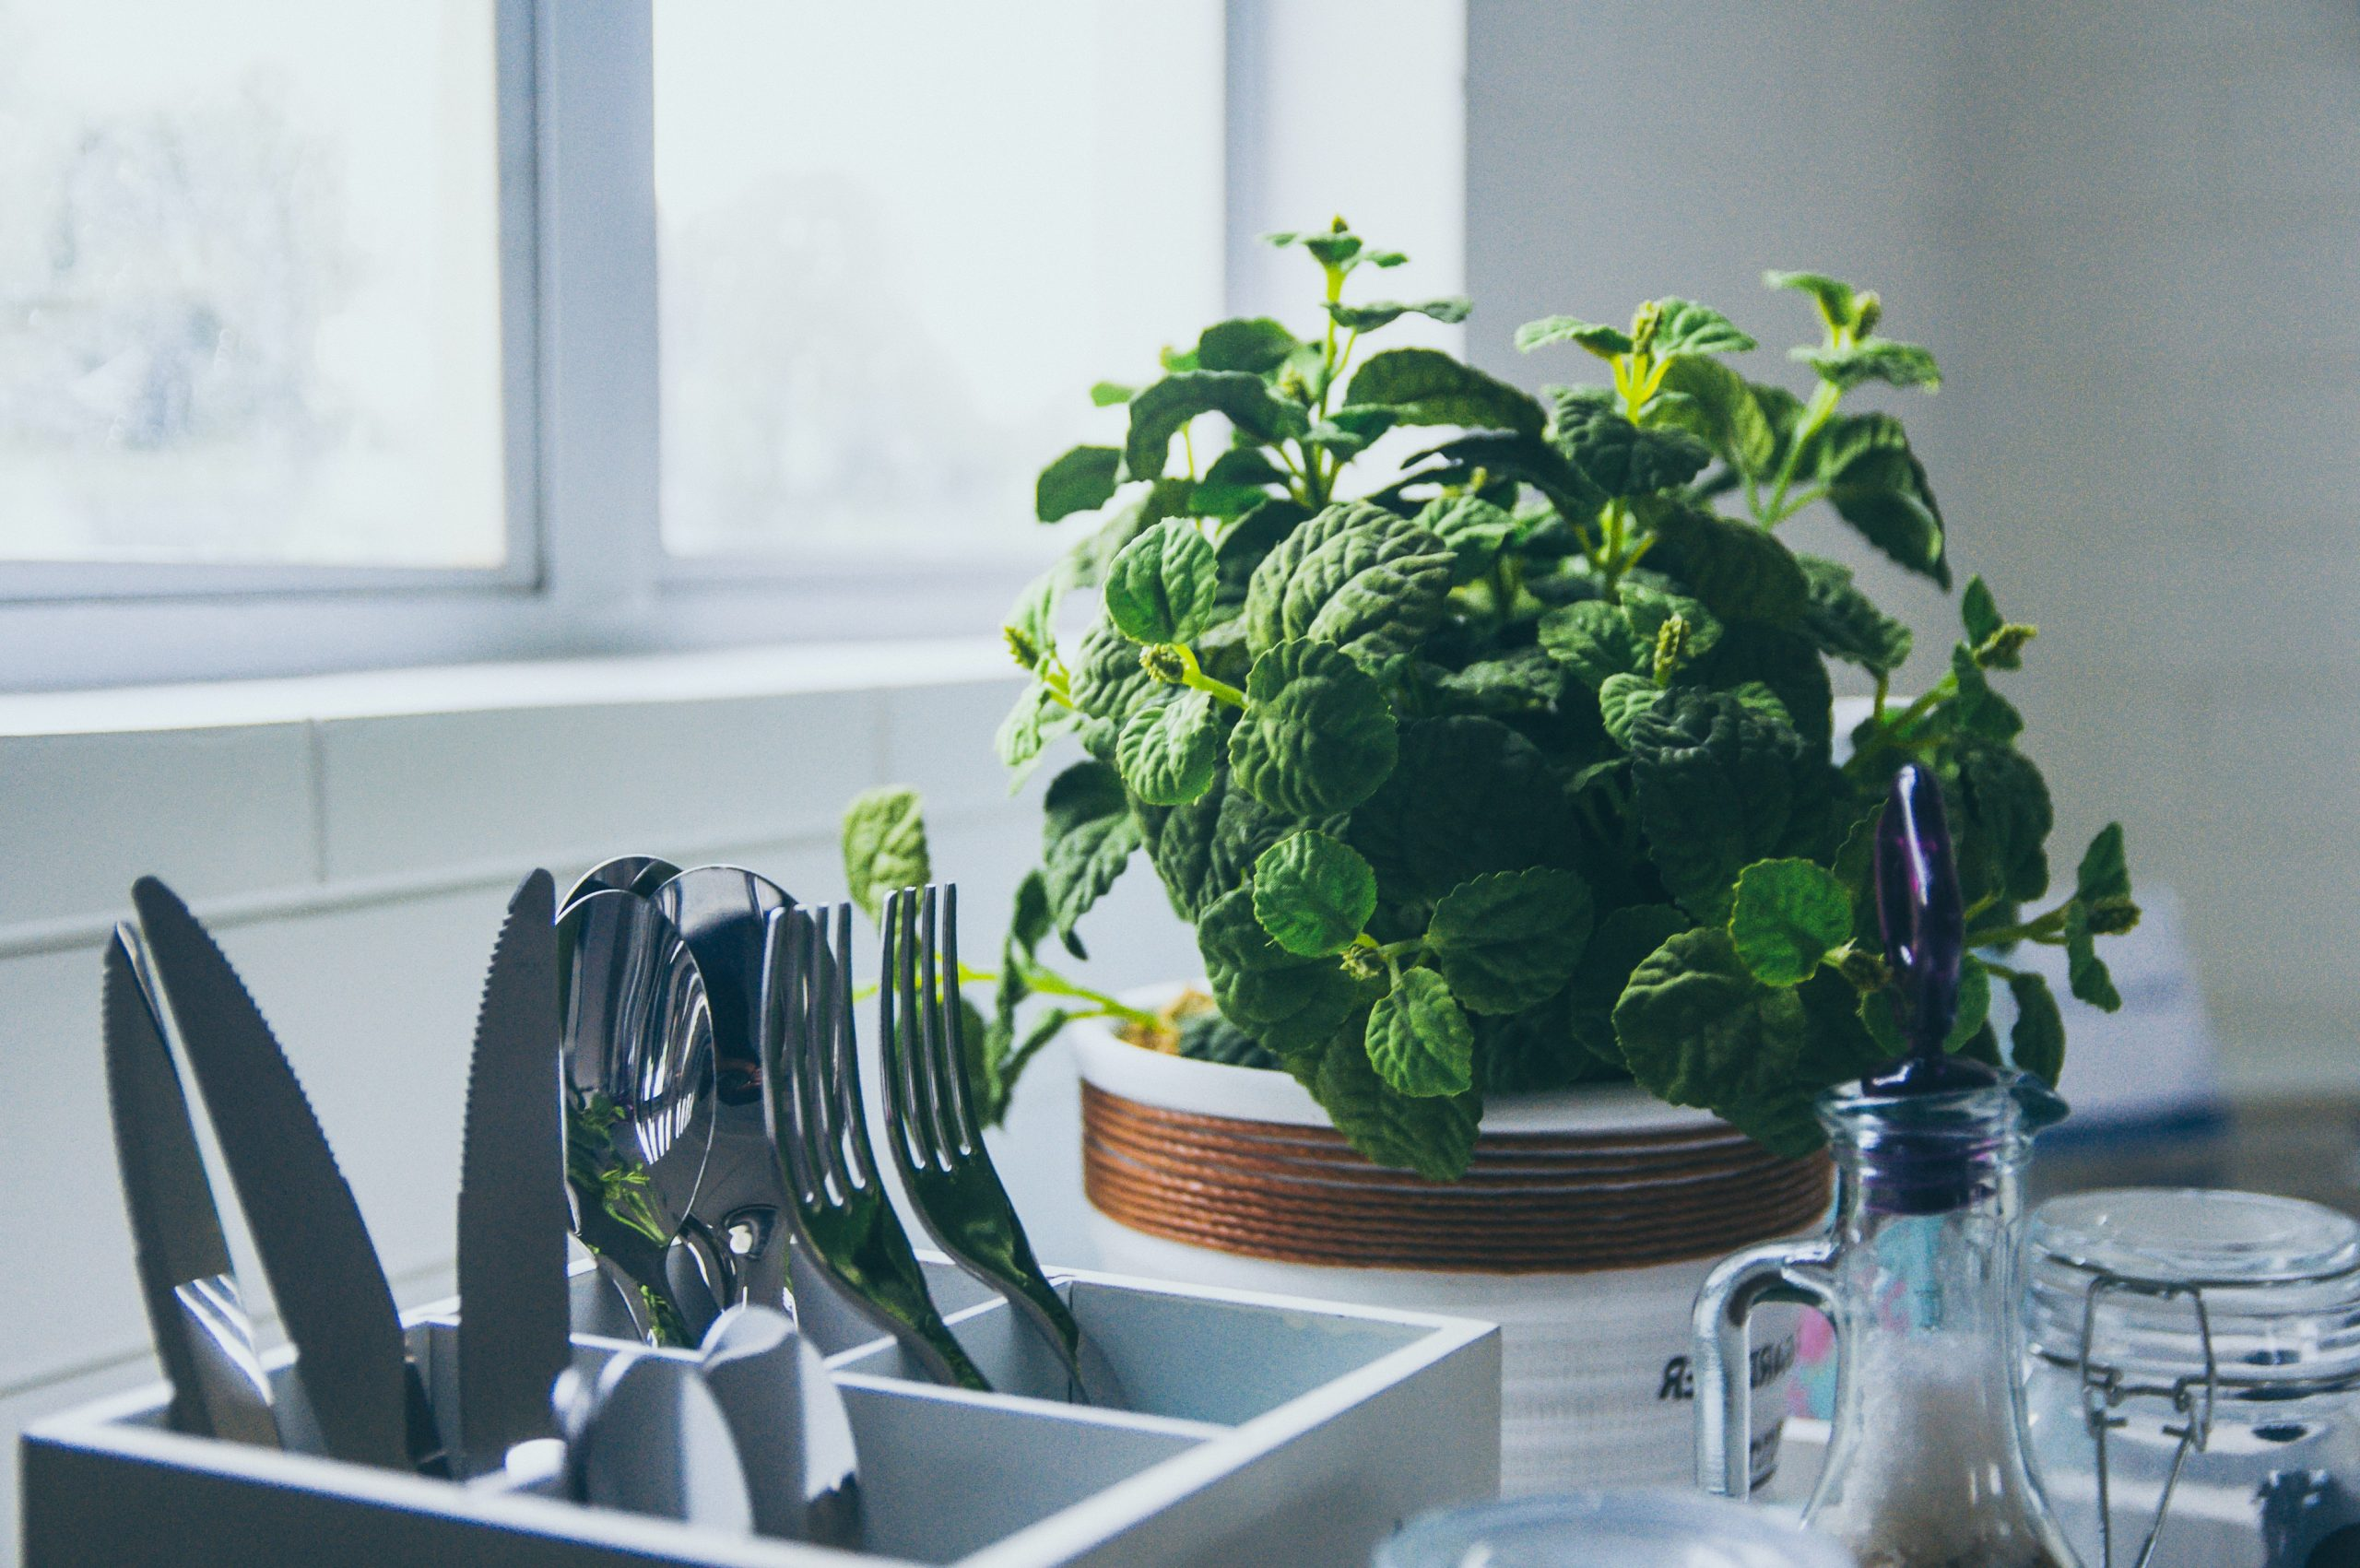 We take a look at the best herb gardens and kits to keep in your home and grow fresh herbs ready for cooking.